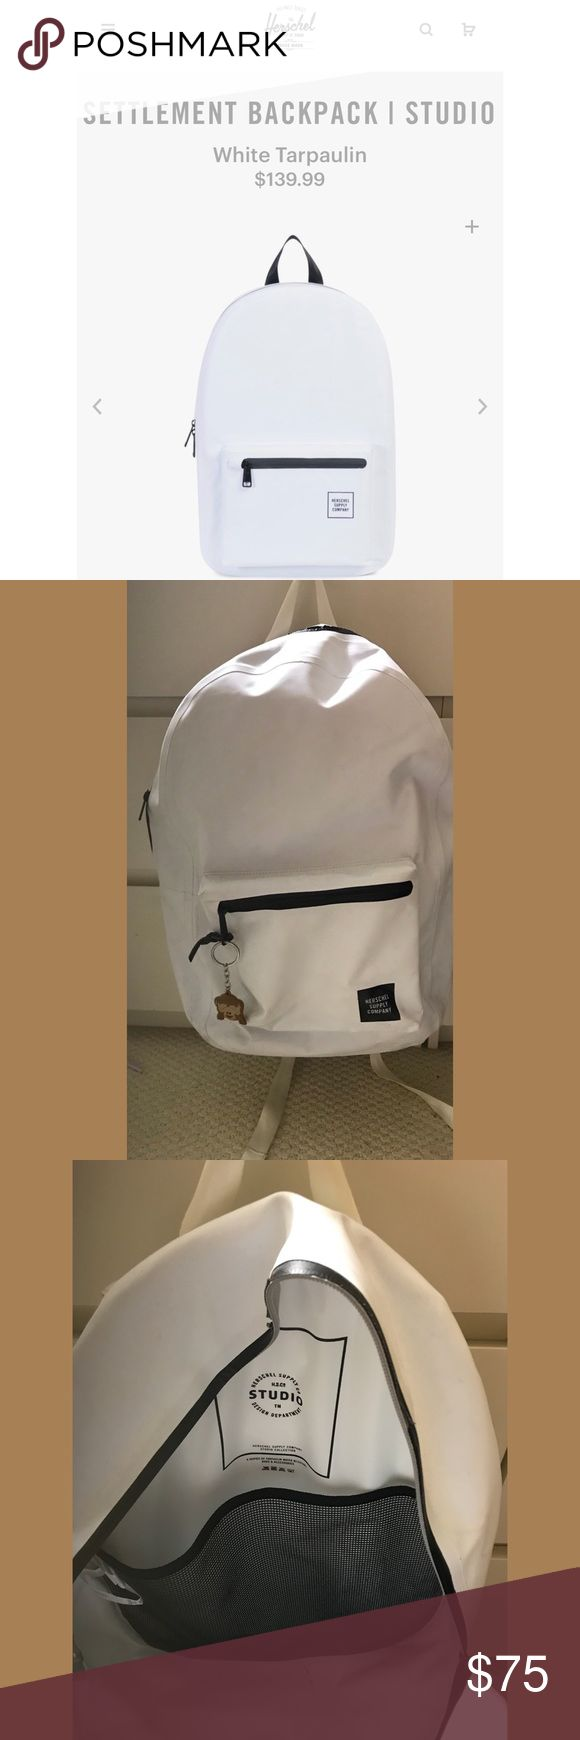 Herschel White Tarpaulin Backpack Lightly used white backpack! This backpack is from the original studio tarpaulin design from a couple years back. It's a water resistant material that is perfect for adventures or rainy weather. As you can tell from the pictures the backpack is in used condition and the price is a reflection of that! Herschel Supply Company Bags Backpacks